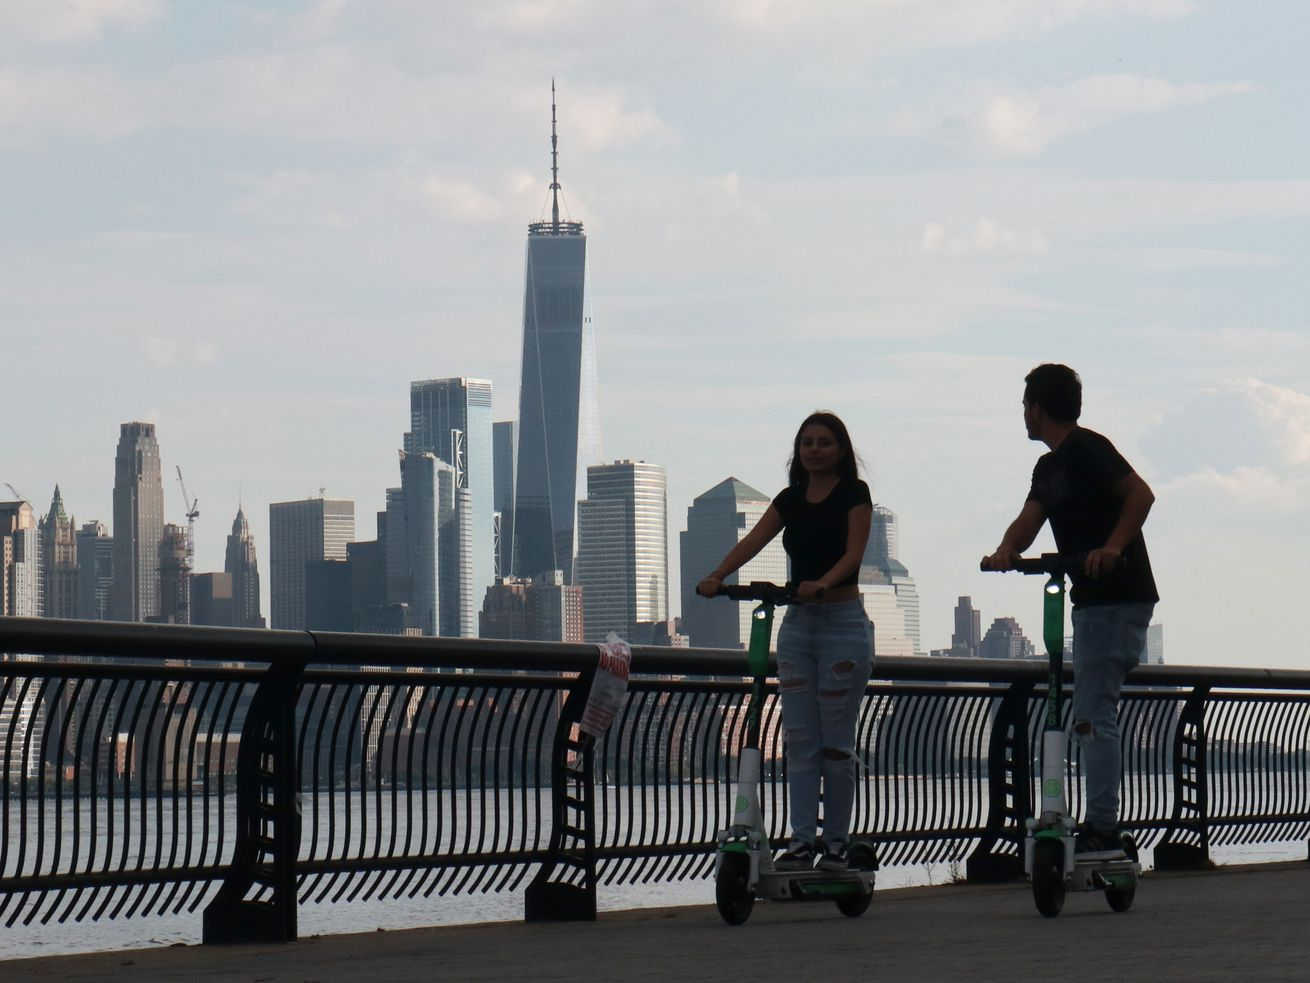 Lime Scooters in Hoboken, New Jersey